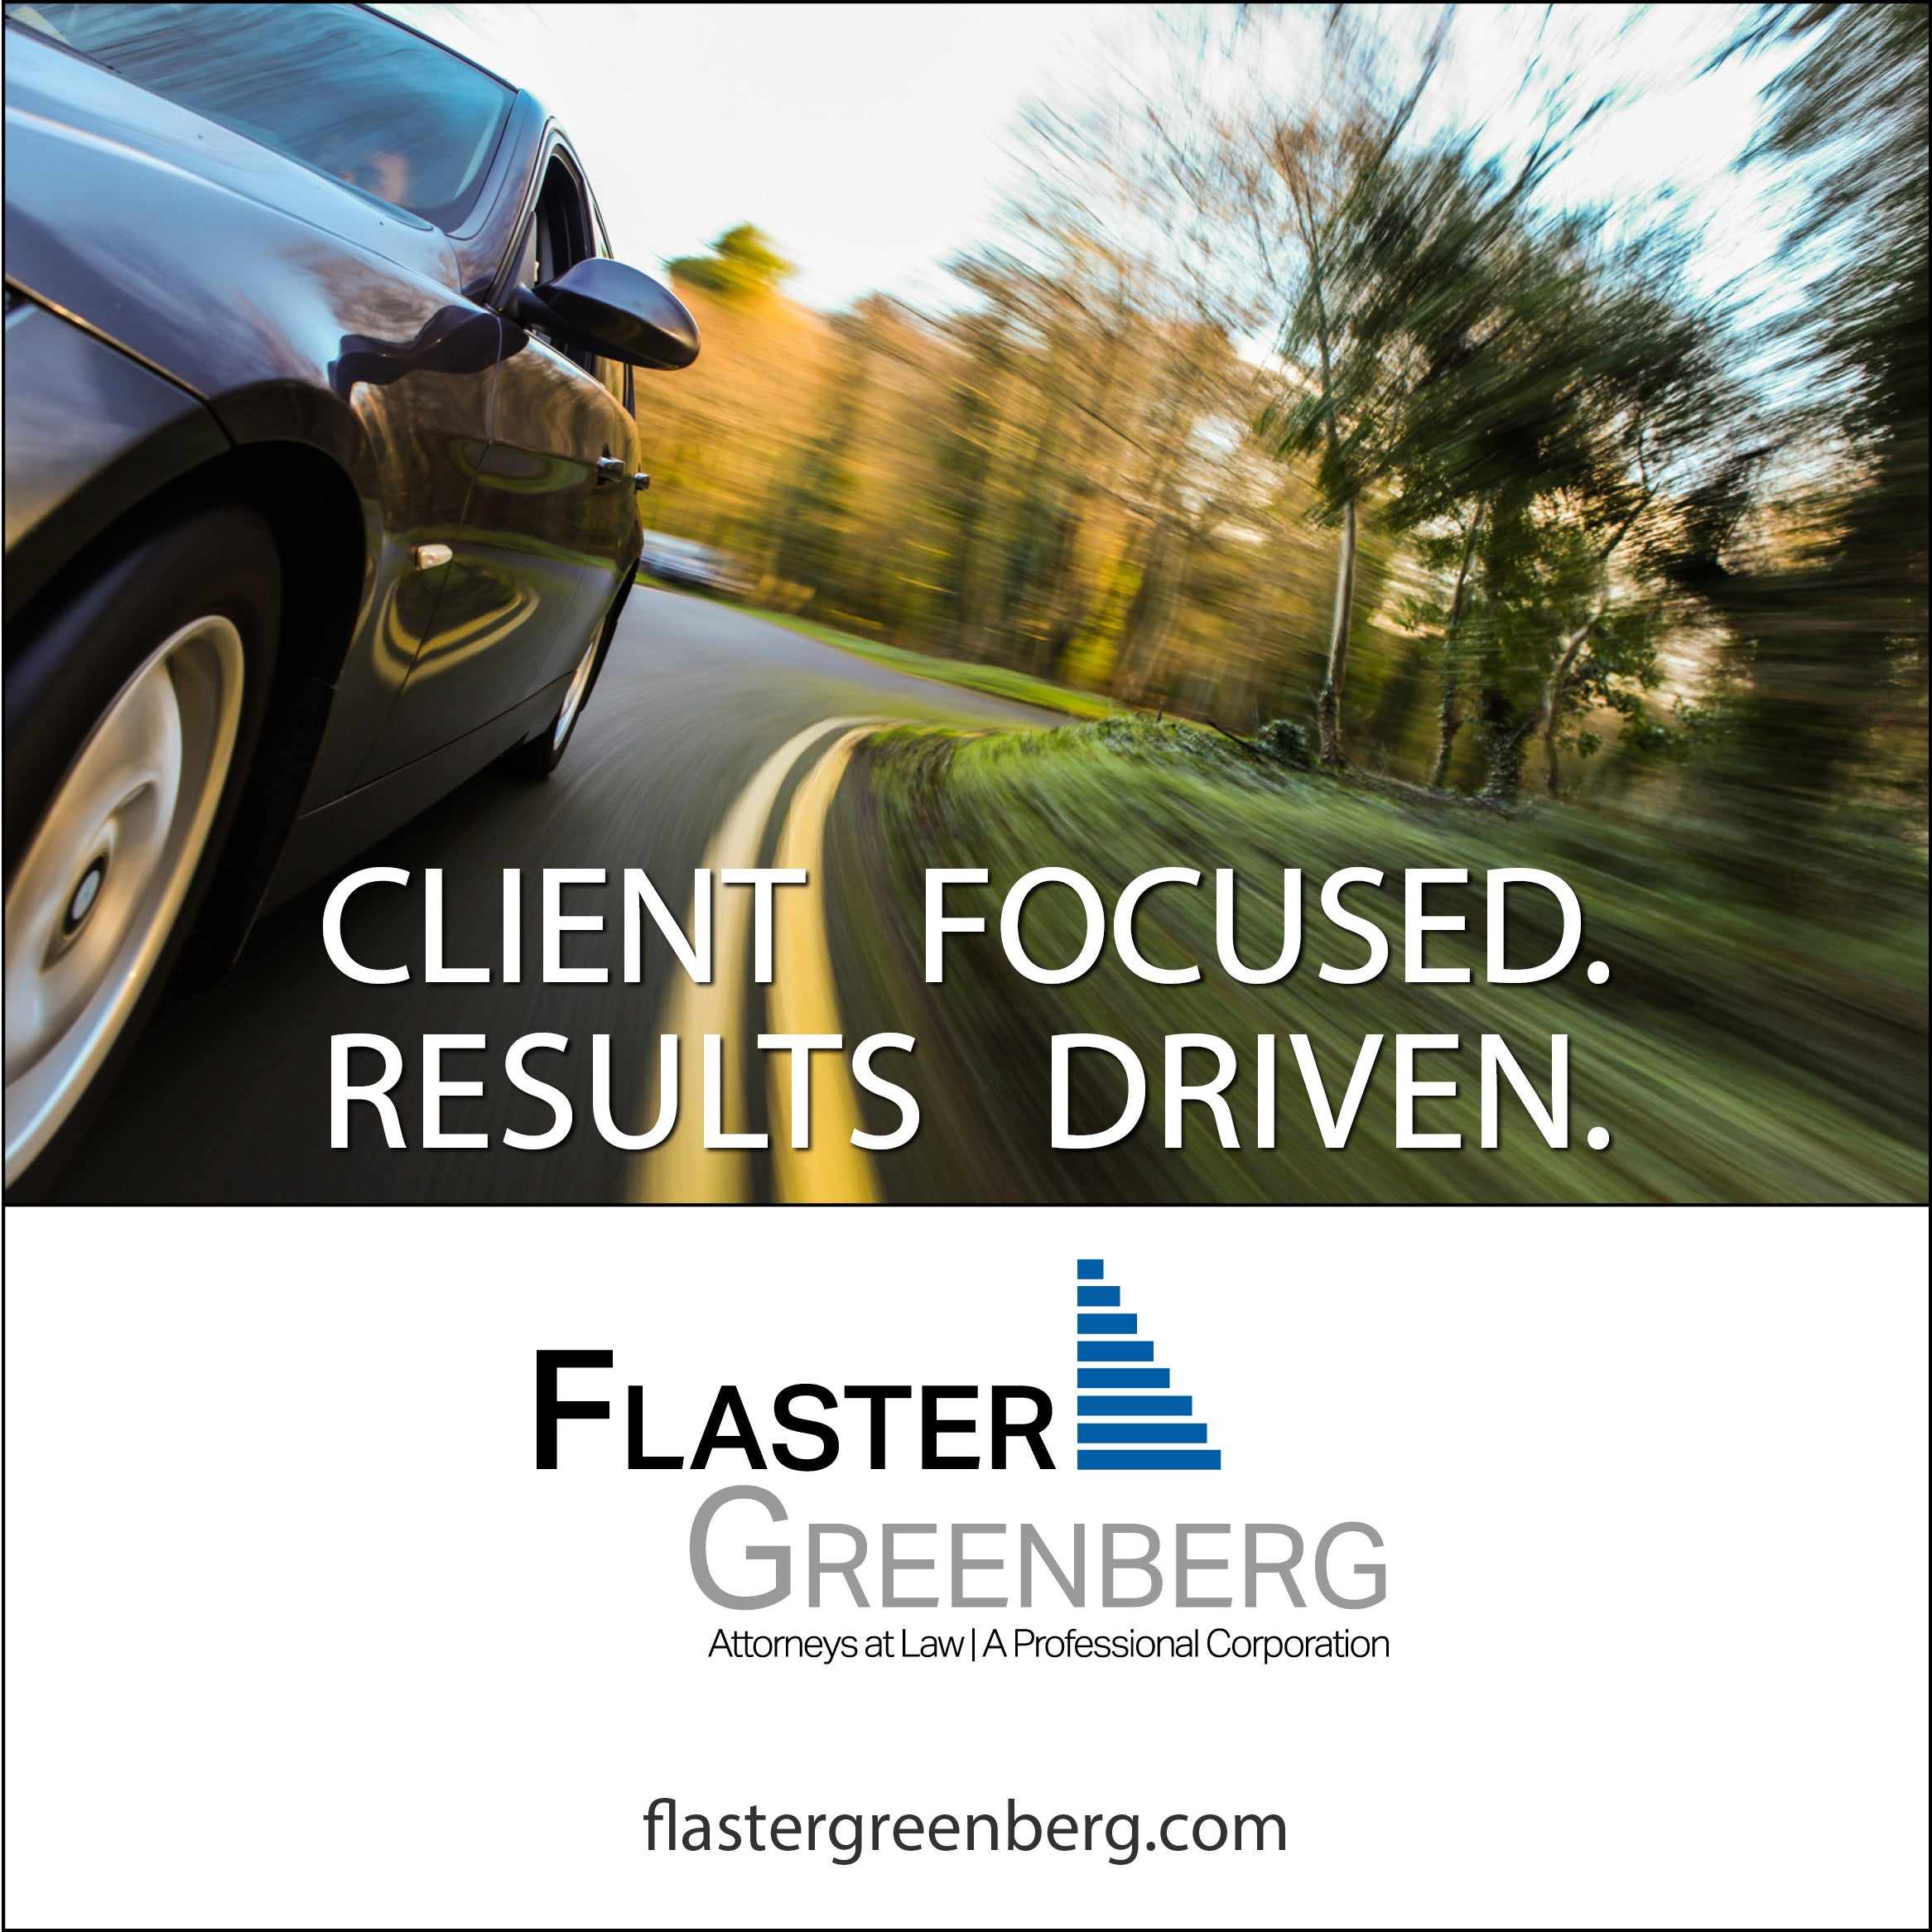 ACCGP's Flaster Greenberg 2019 Sponsor Ad